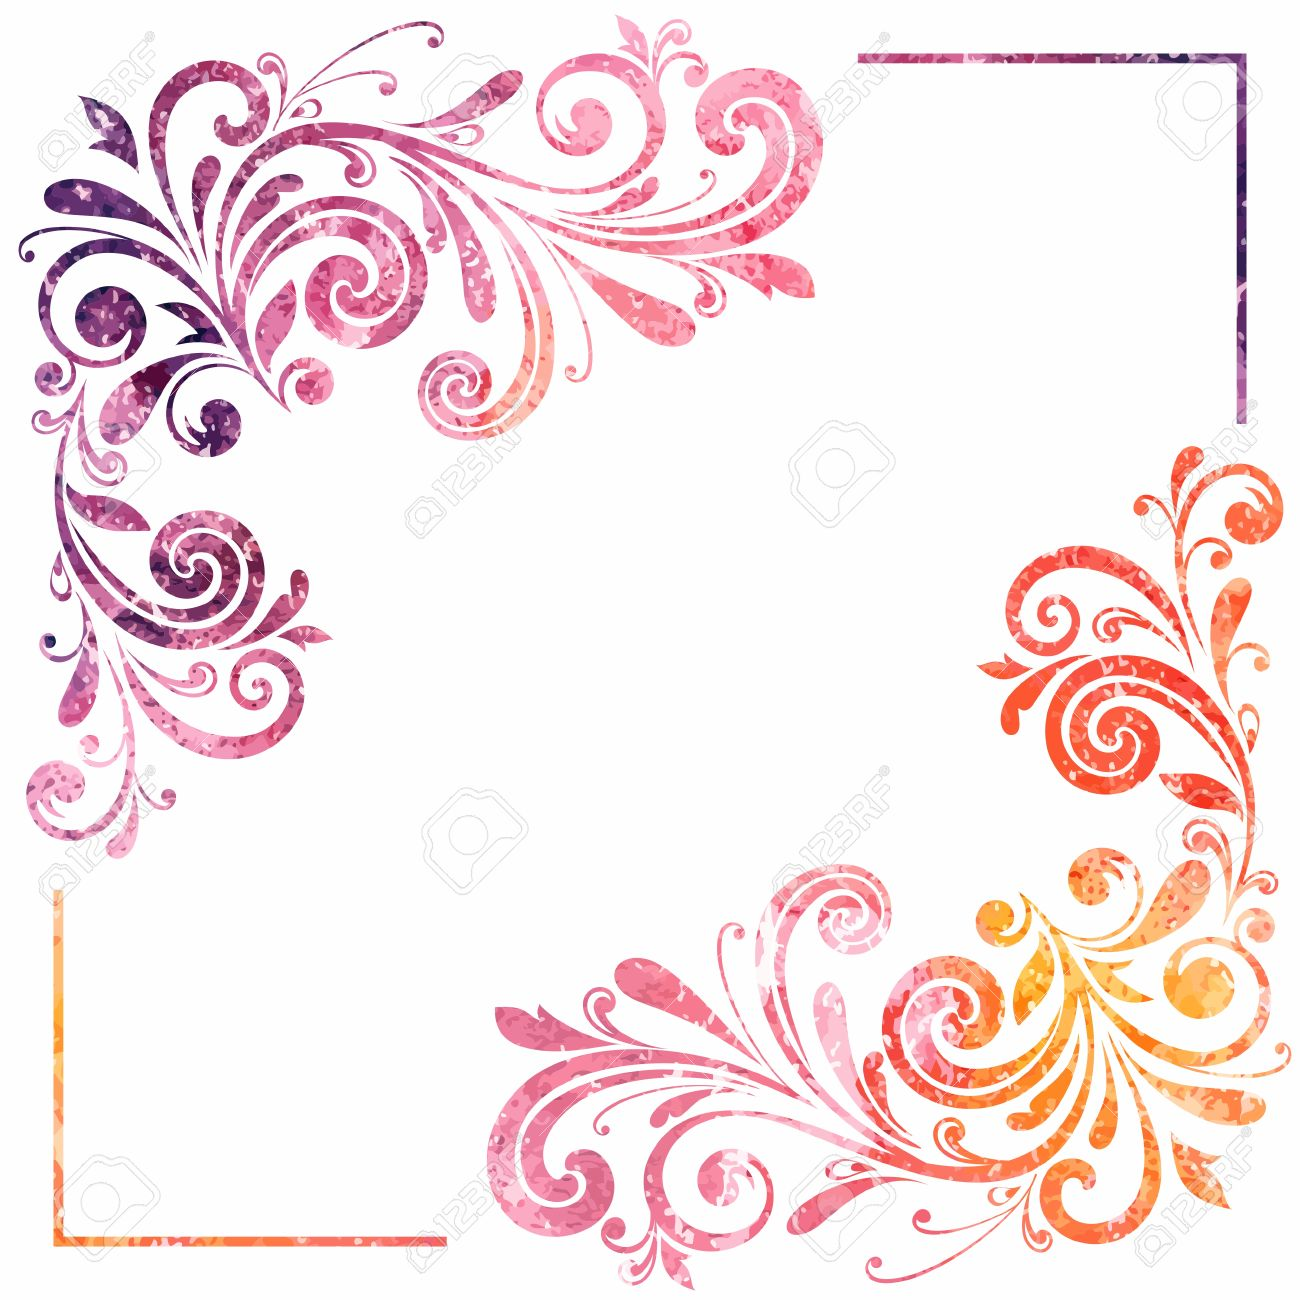 Vintage Artistic Frame Vector Watercolor Background Royalty Free ...